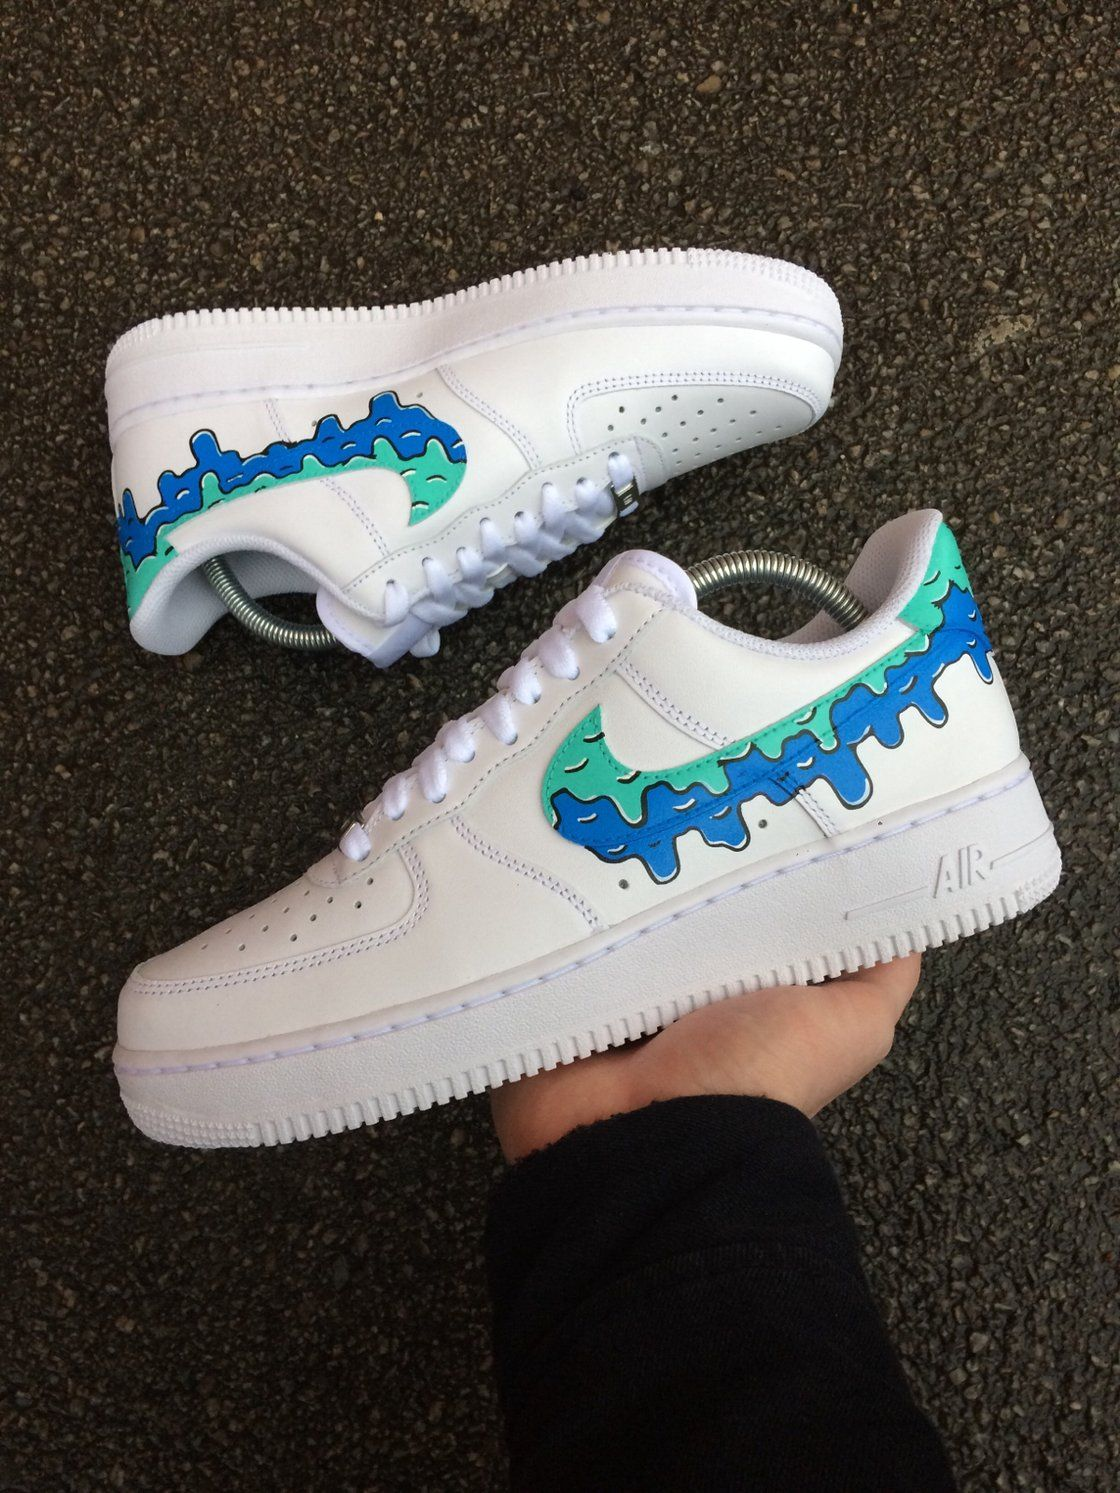 Nike Air Force 1 High Drip Custom AF1. #ad #airforce